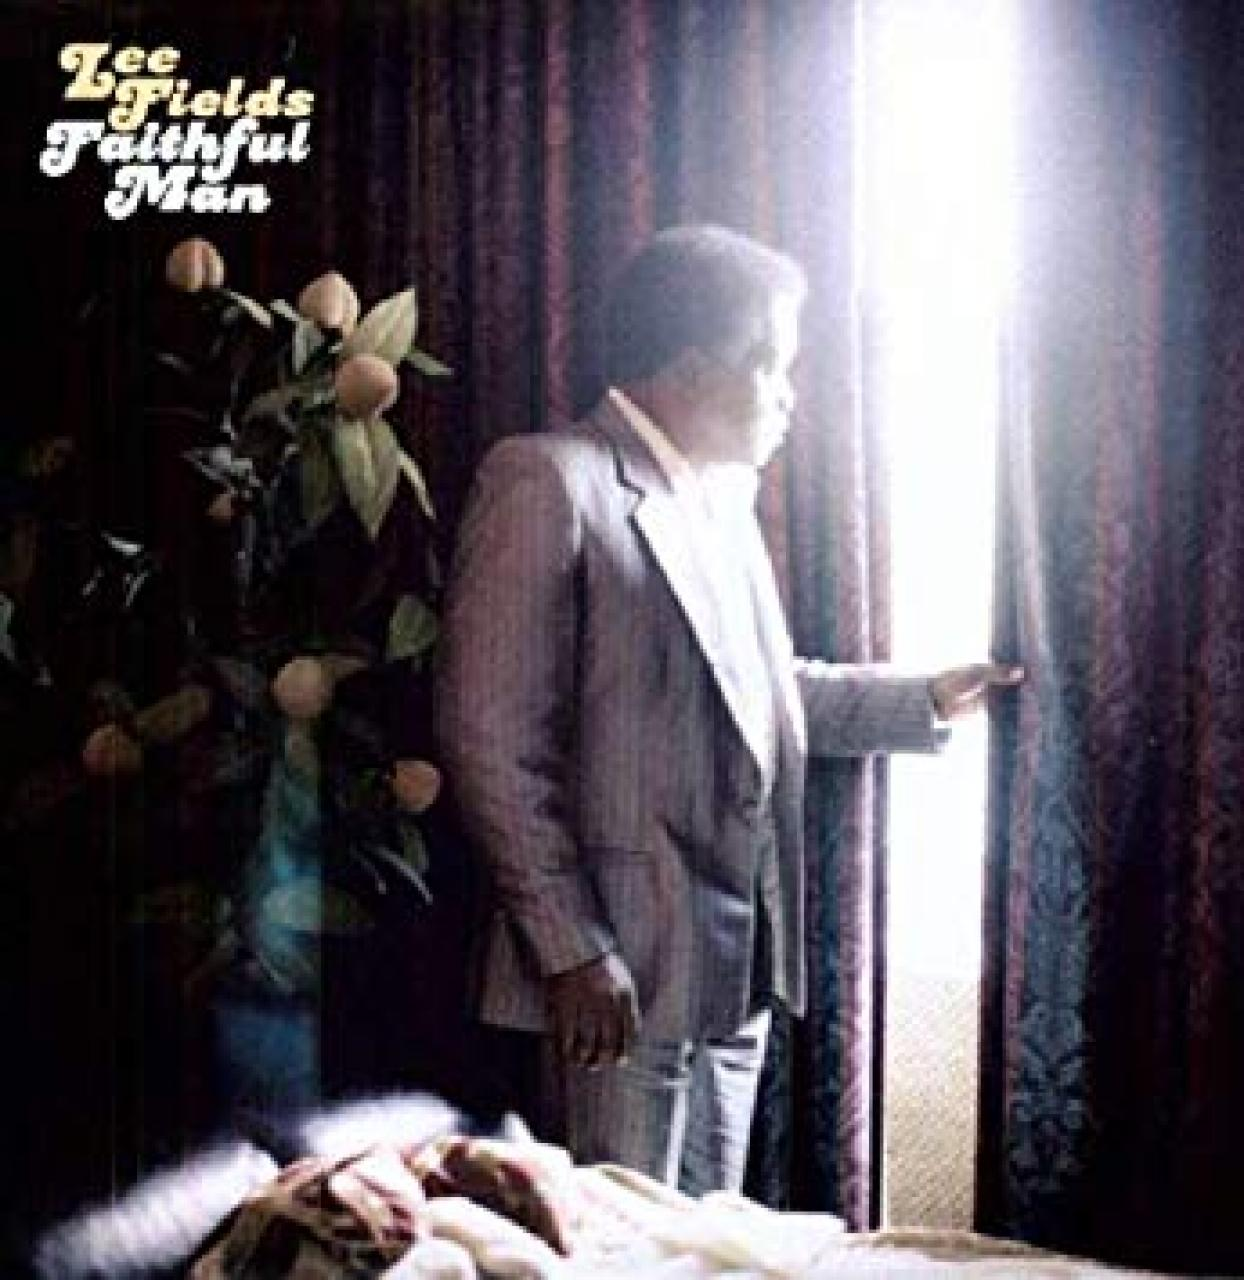 Lee Fields & the Expressions - Faithful Man album cover